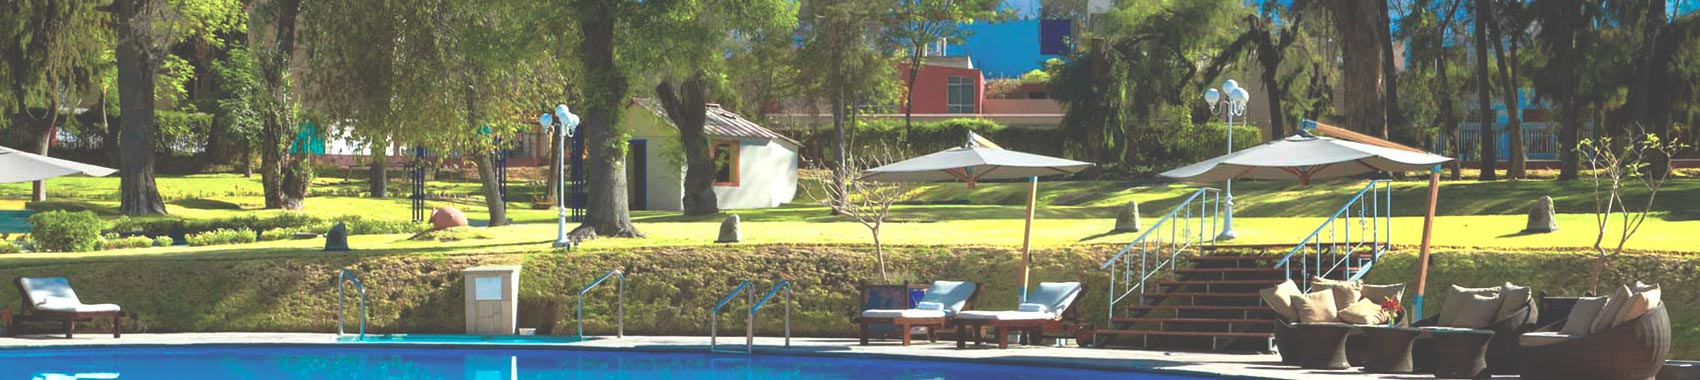 Best Arequipa Hotels